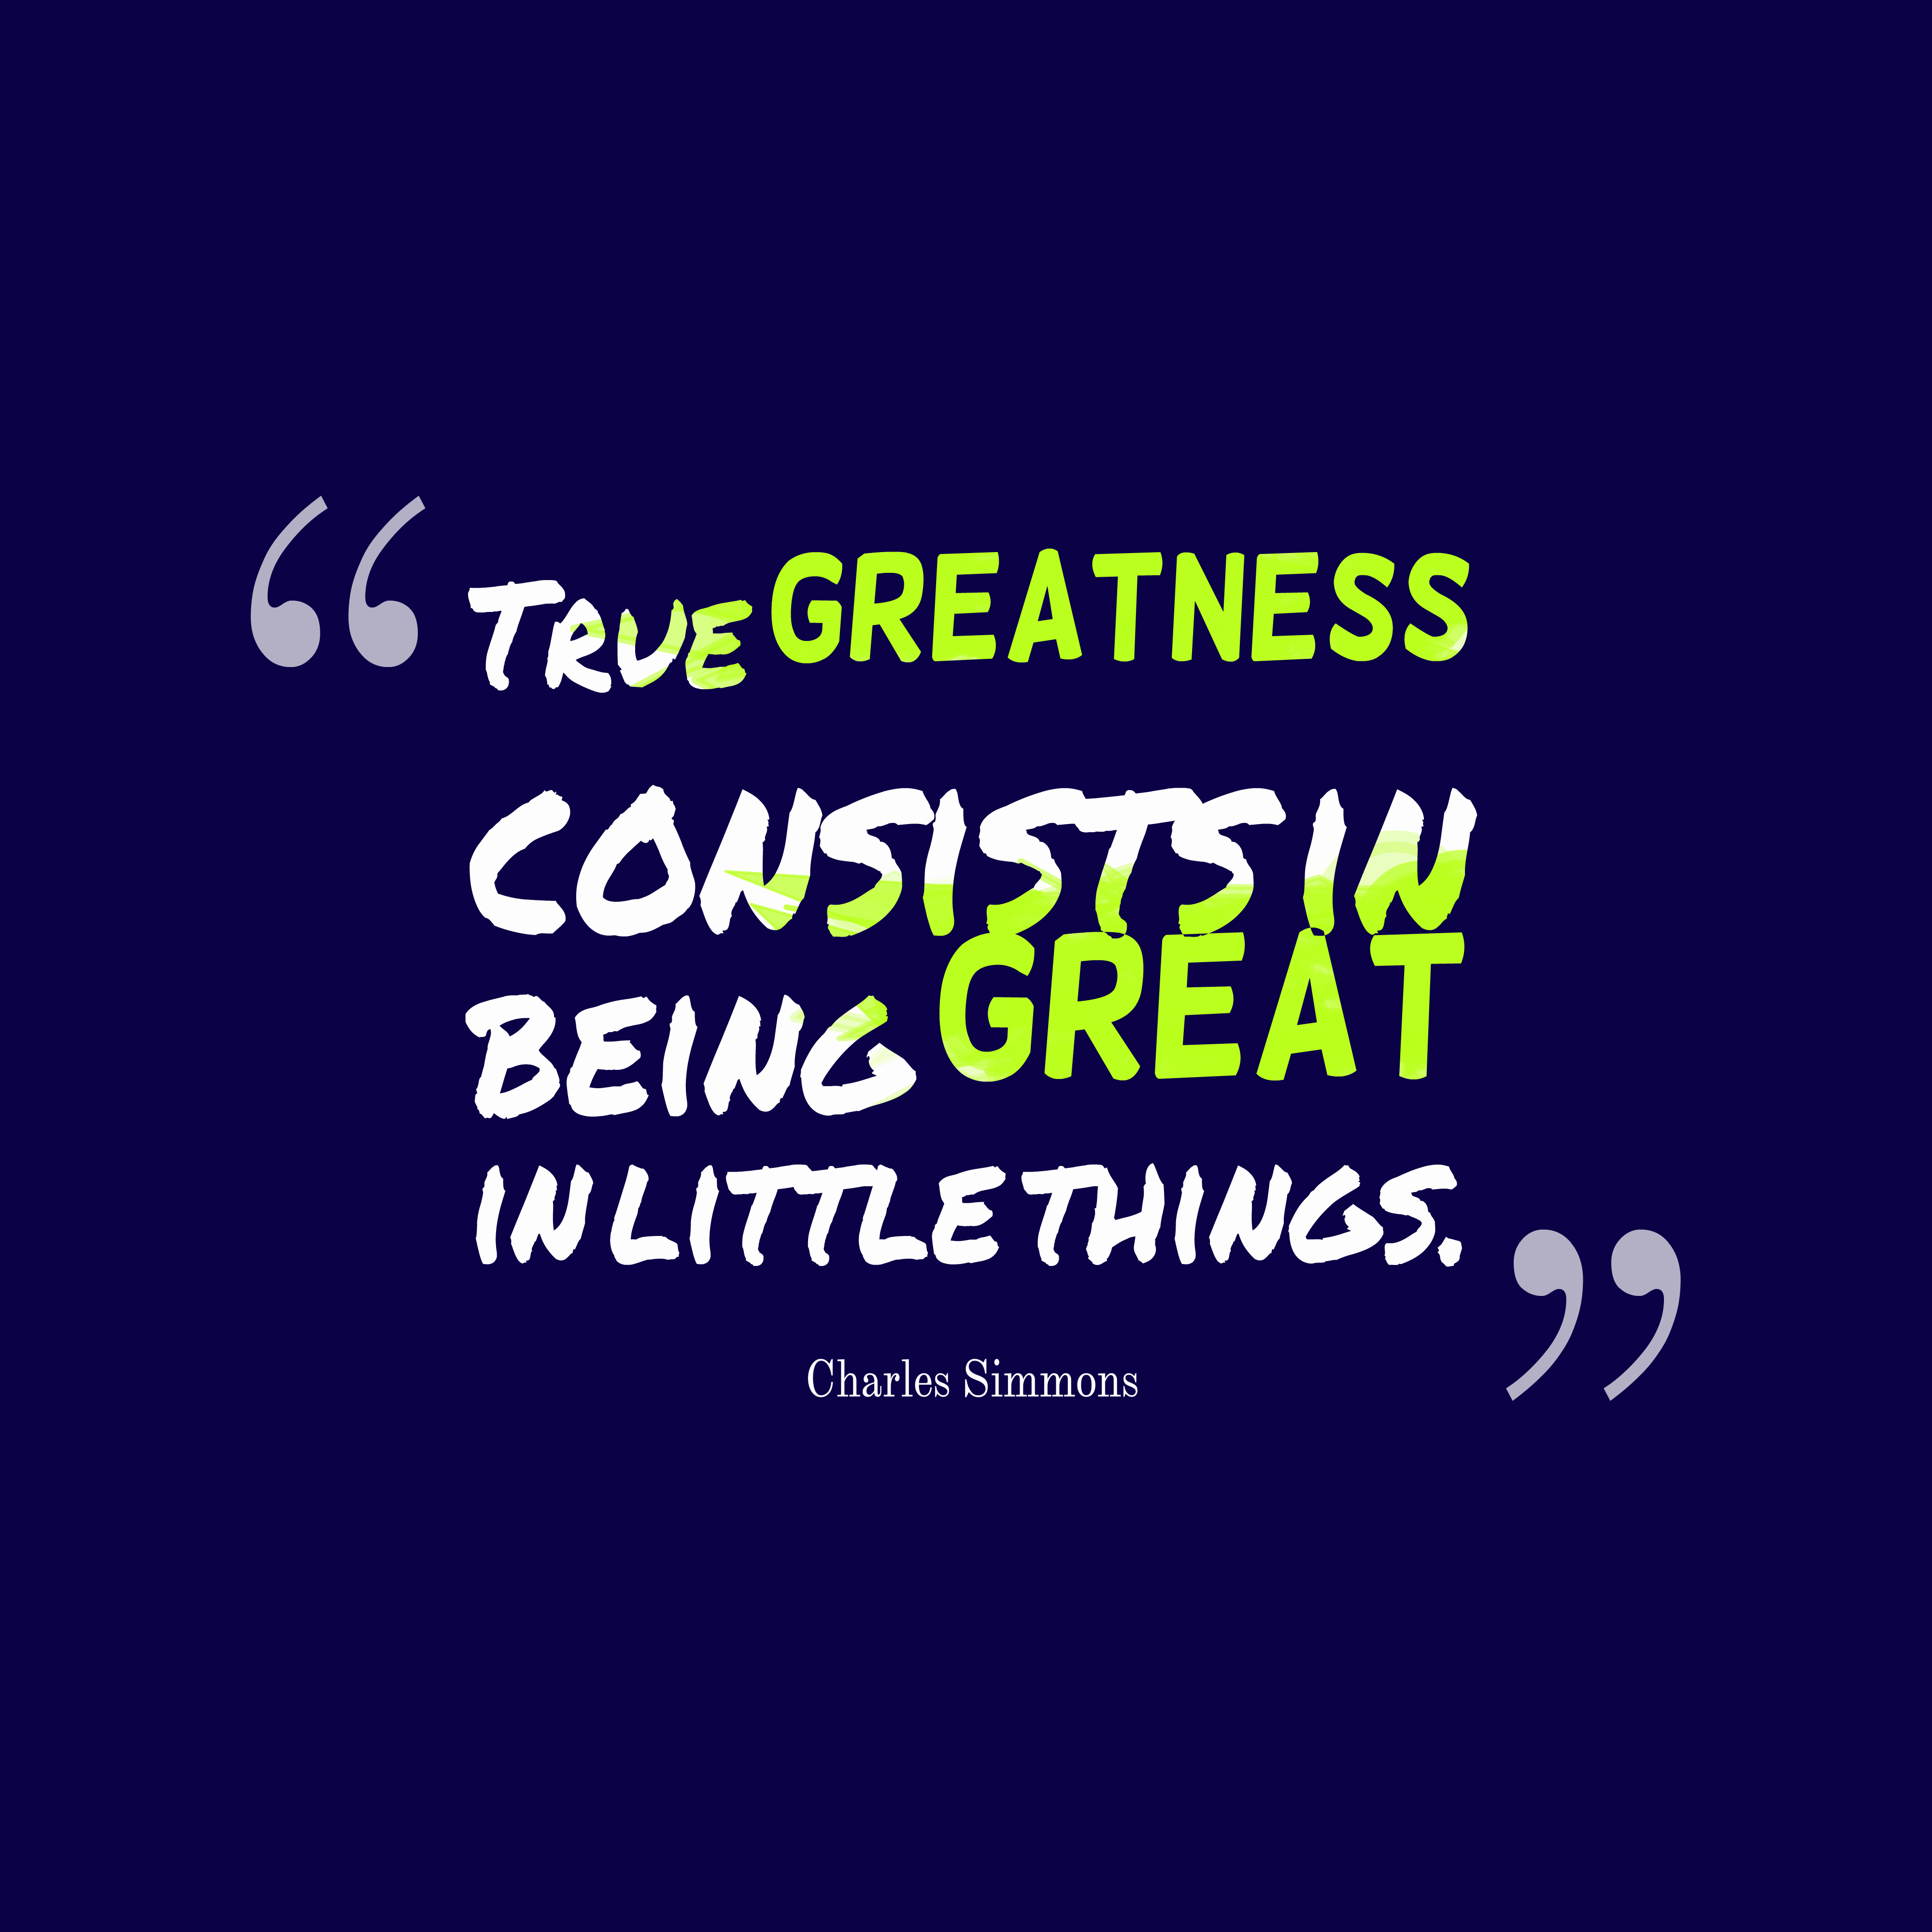 Quotes About Being Great Charles Simmons quote about great. Quotes About Being Great